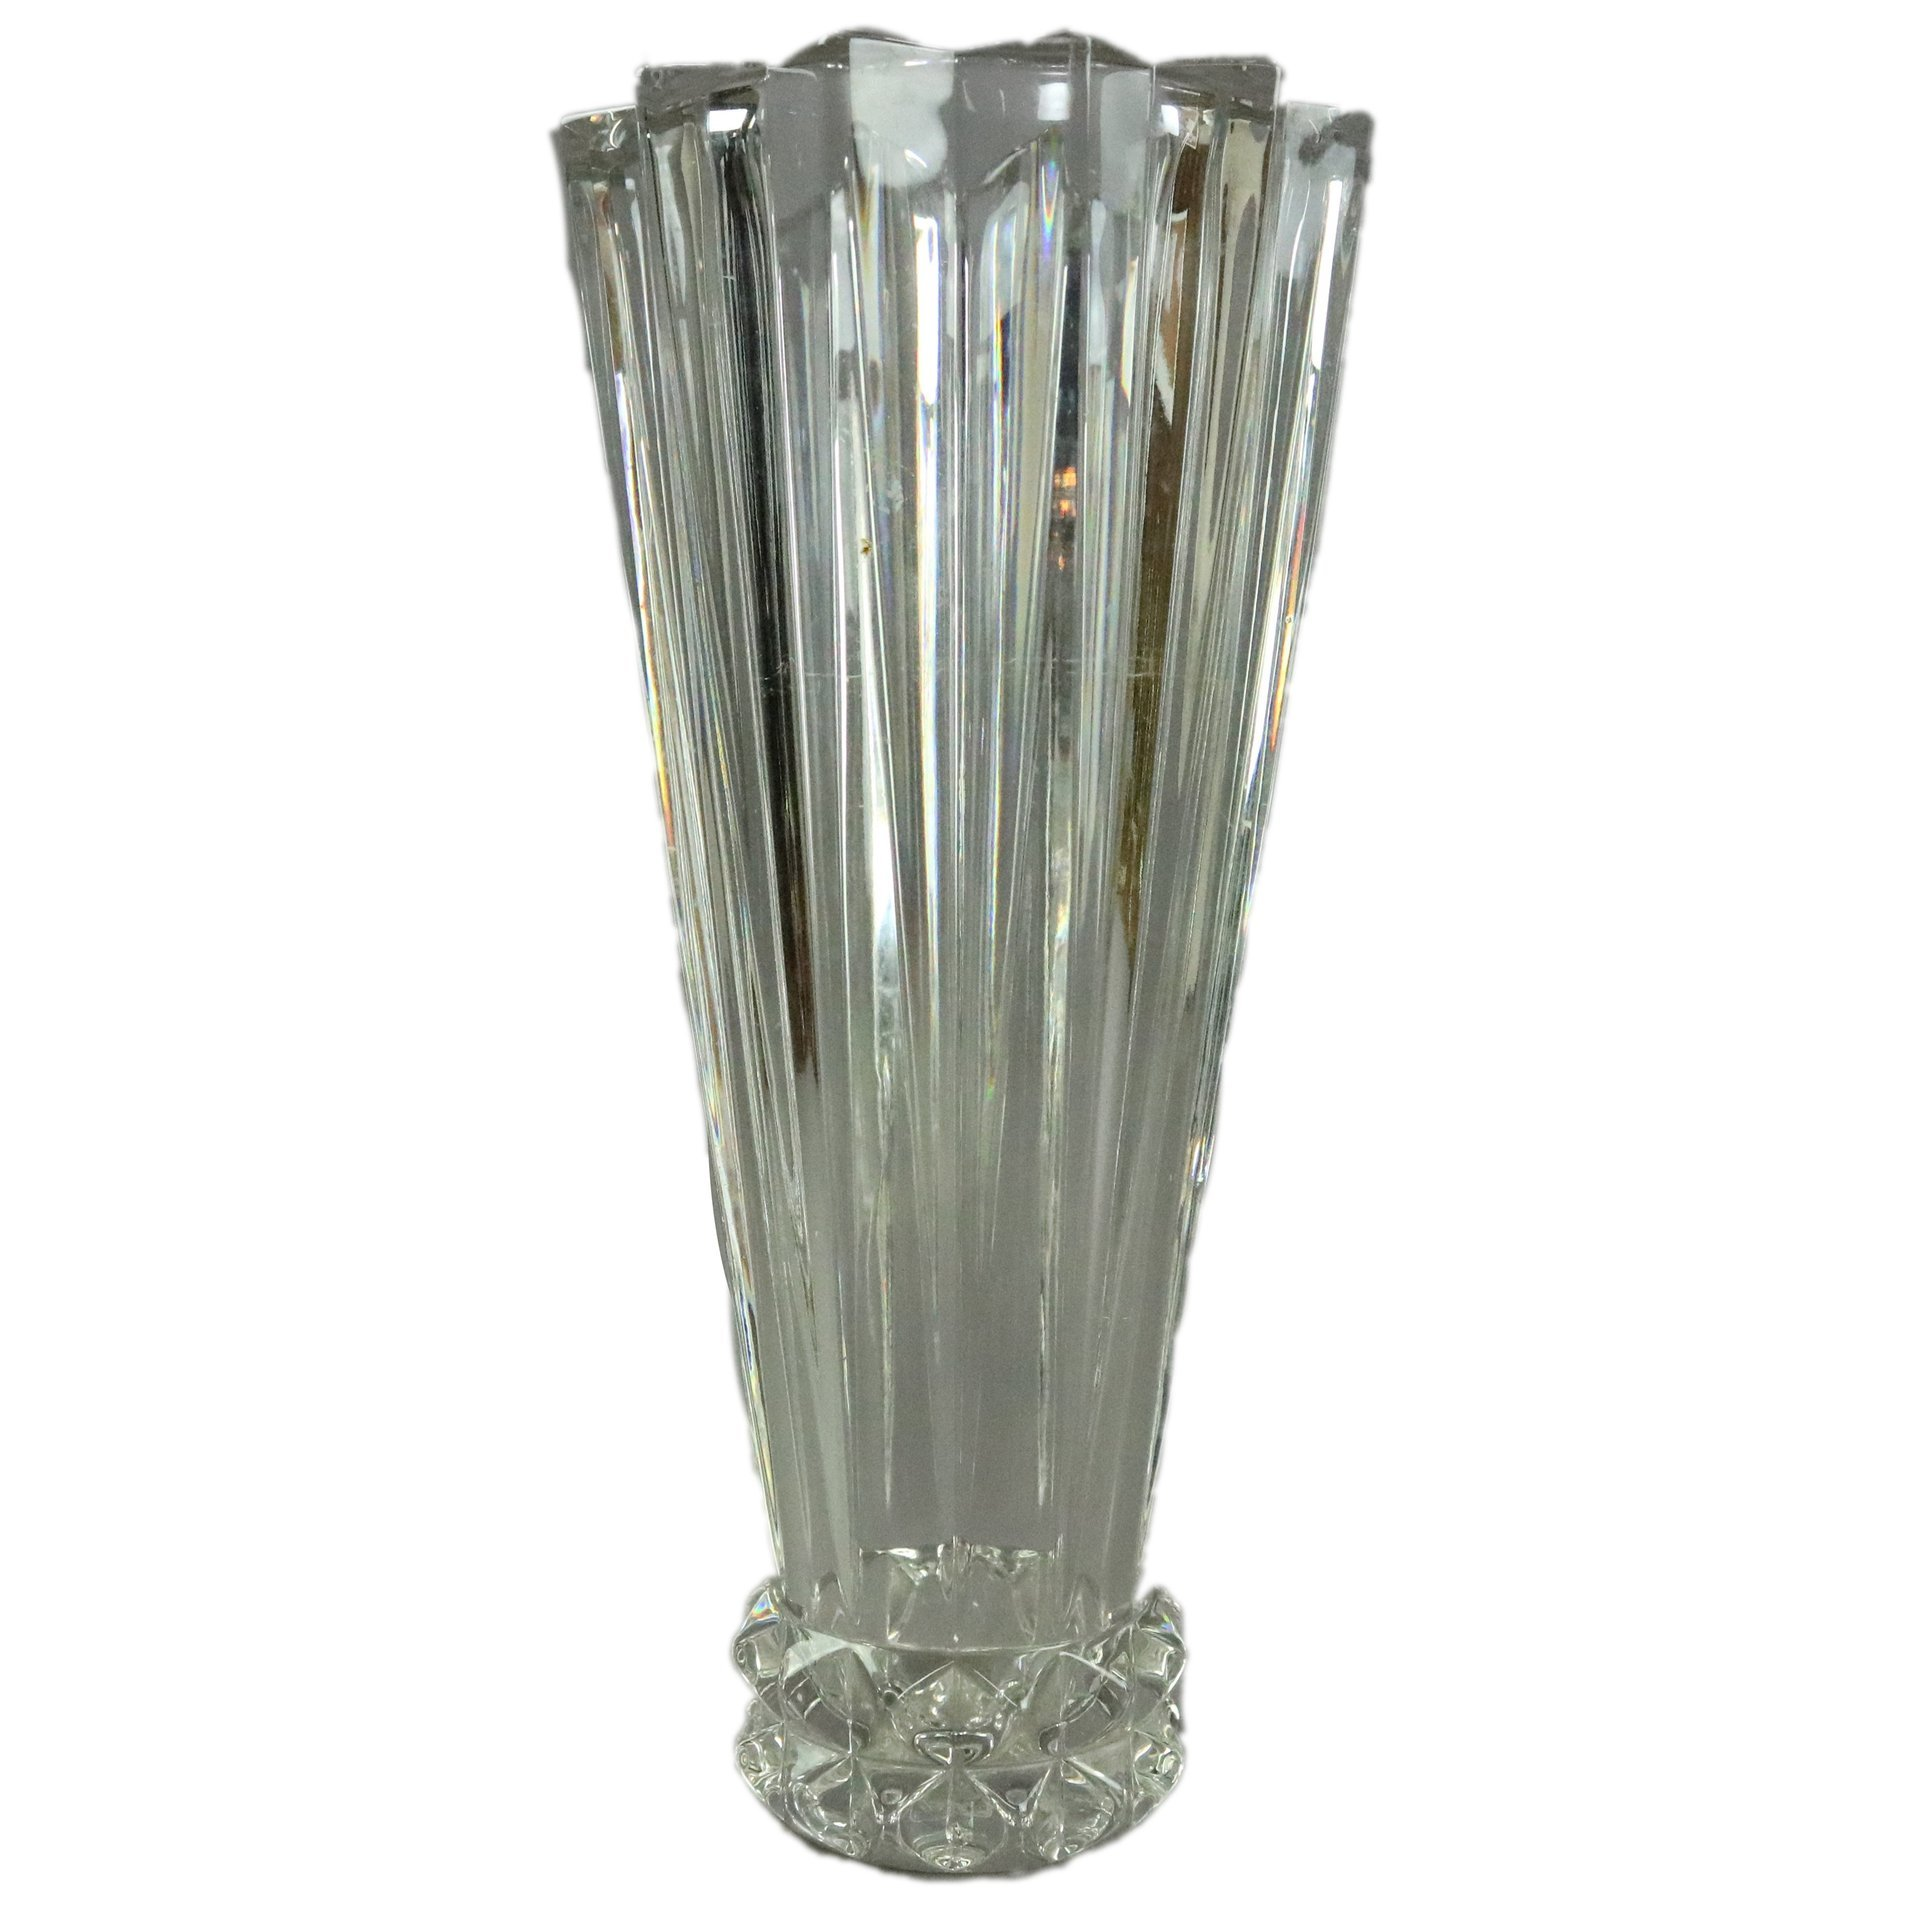 Rosenthal 1950's Art Deco Style Glass Vase | Antique Revival Ithaca, Watkins Glen, Corning, NY